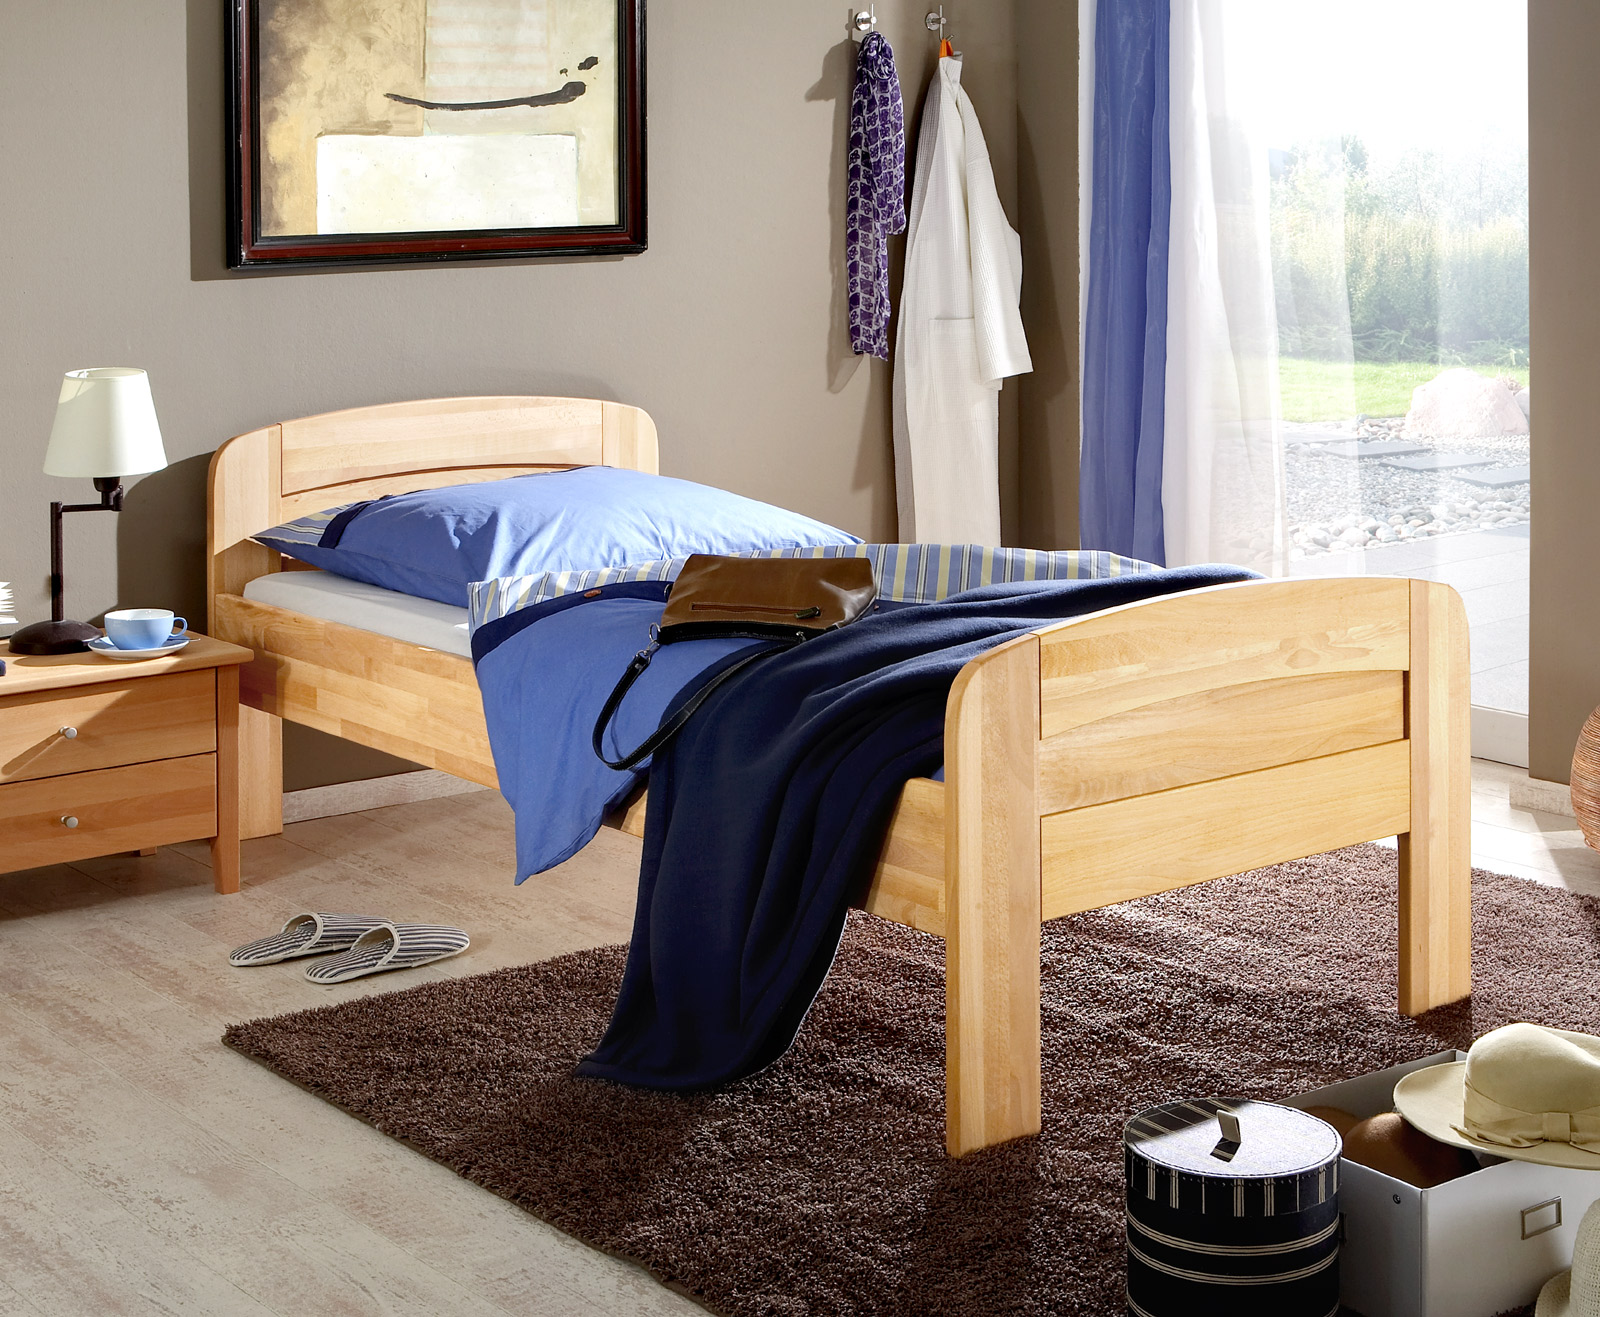 seniorenbett in komforth he aus massiver buche. Black Bedroom Furniture Sets. Home Design Ideas